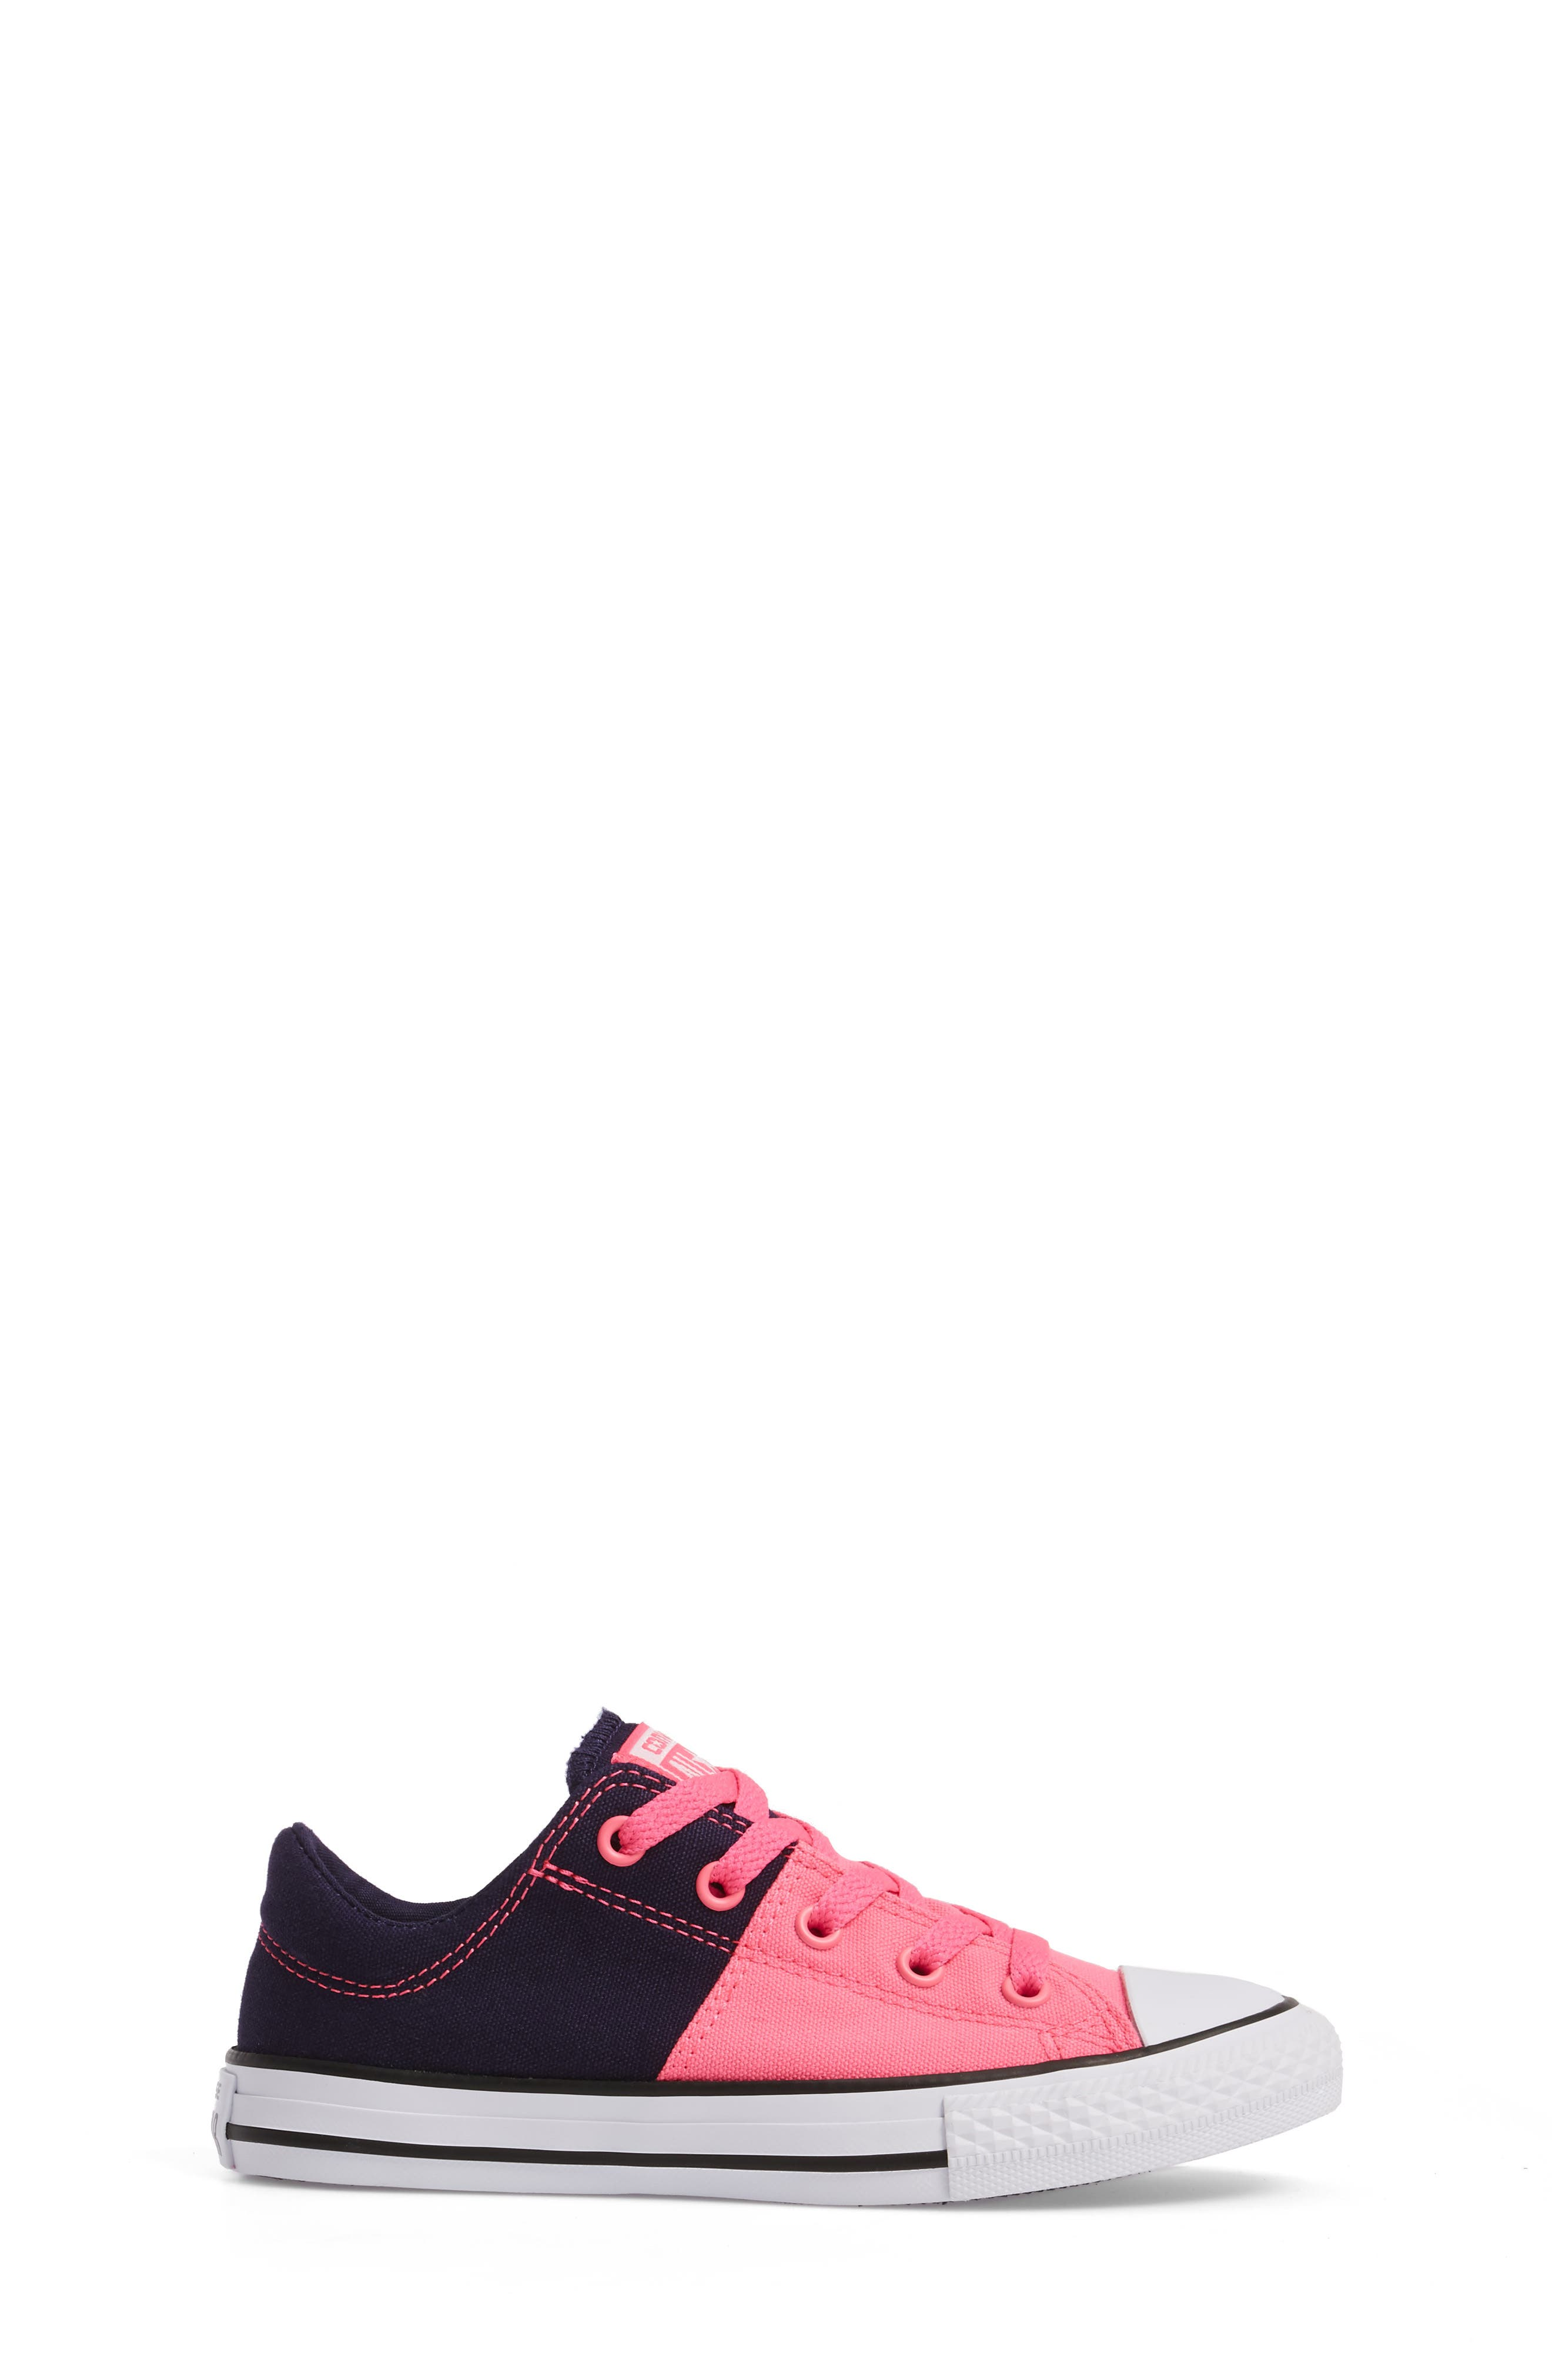 Chuck Taylor<sup>®</sup> All Star<sup>®</sup> Madison Low Top Sneaker,                             Alternate thumbnail 15, color,